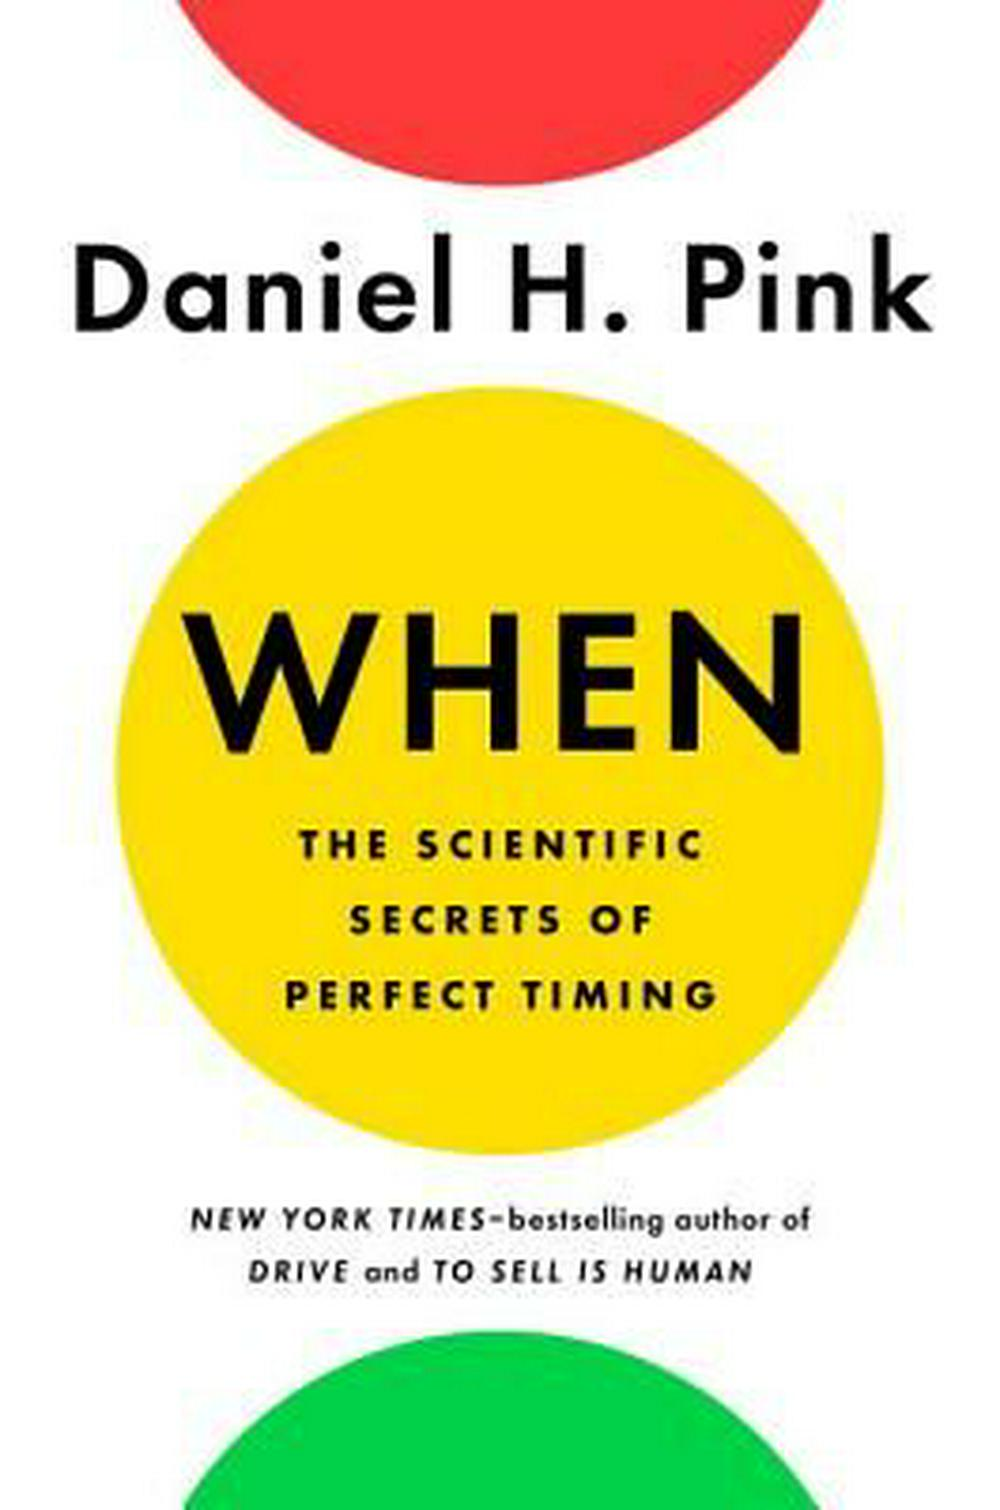 When: The Scientific Secrets of Perfect Timing by Daniel H. Pink, ISBN: 9780735210622